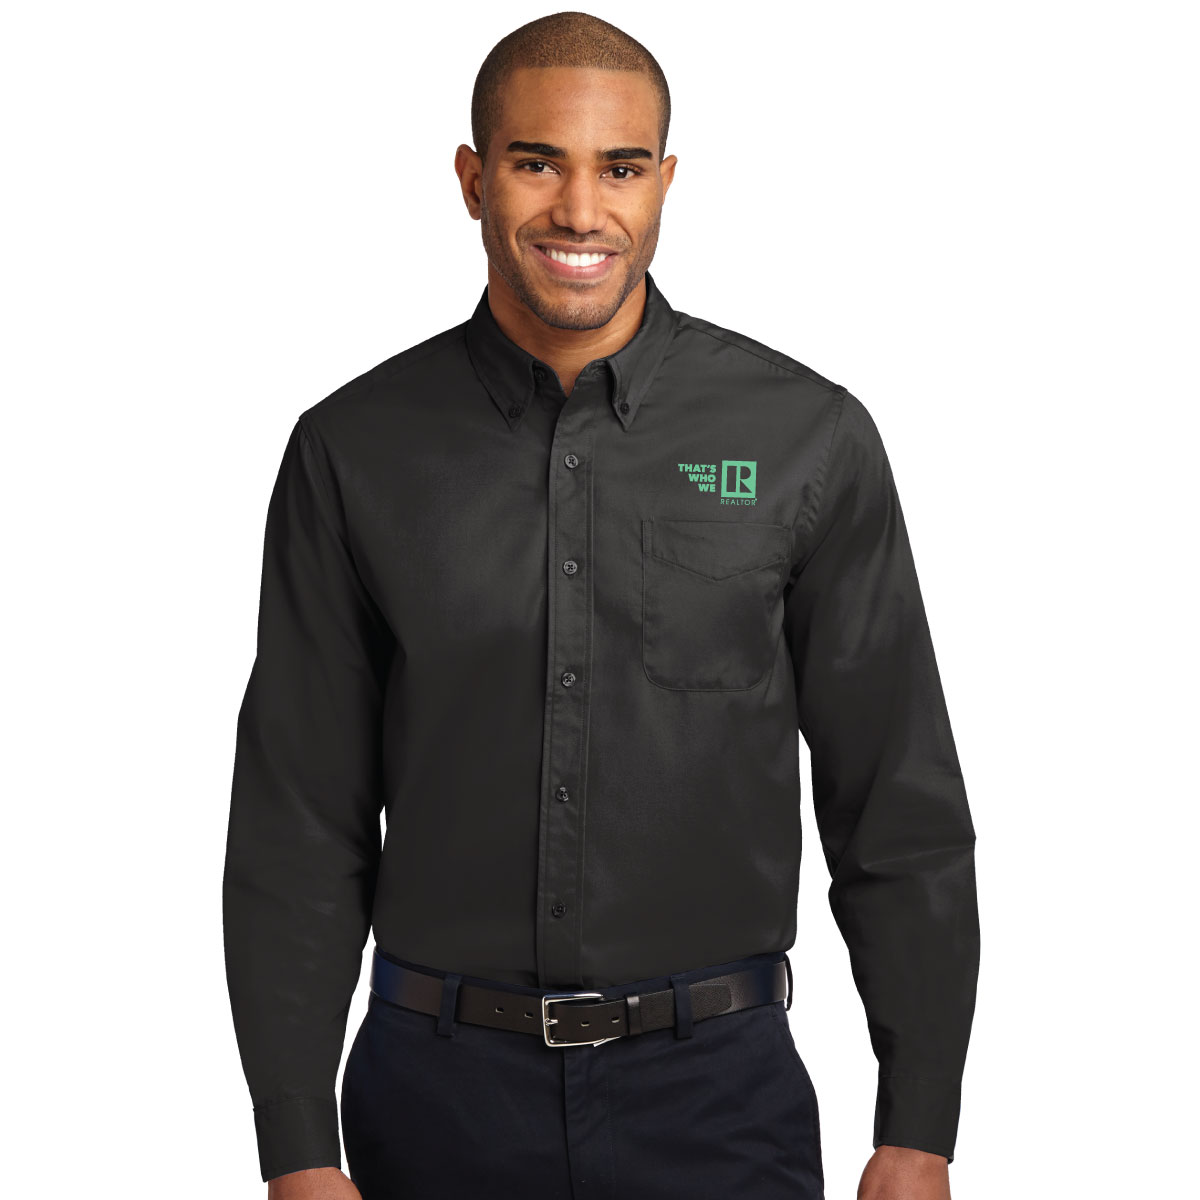 """Thats Who We R"" Mens Easy Care Long Sleeve Twill Shirt Twwr,Thats,Whos,Wes,Ares,Twills,ButtonDowns,Dress,Shirts,Collars"